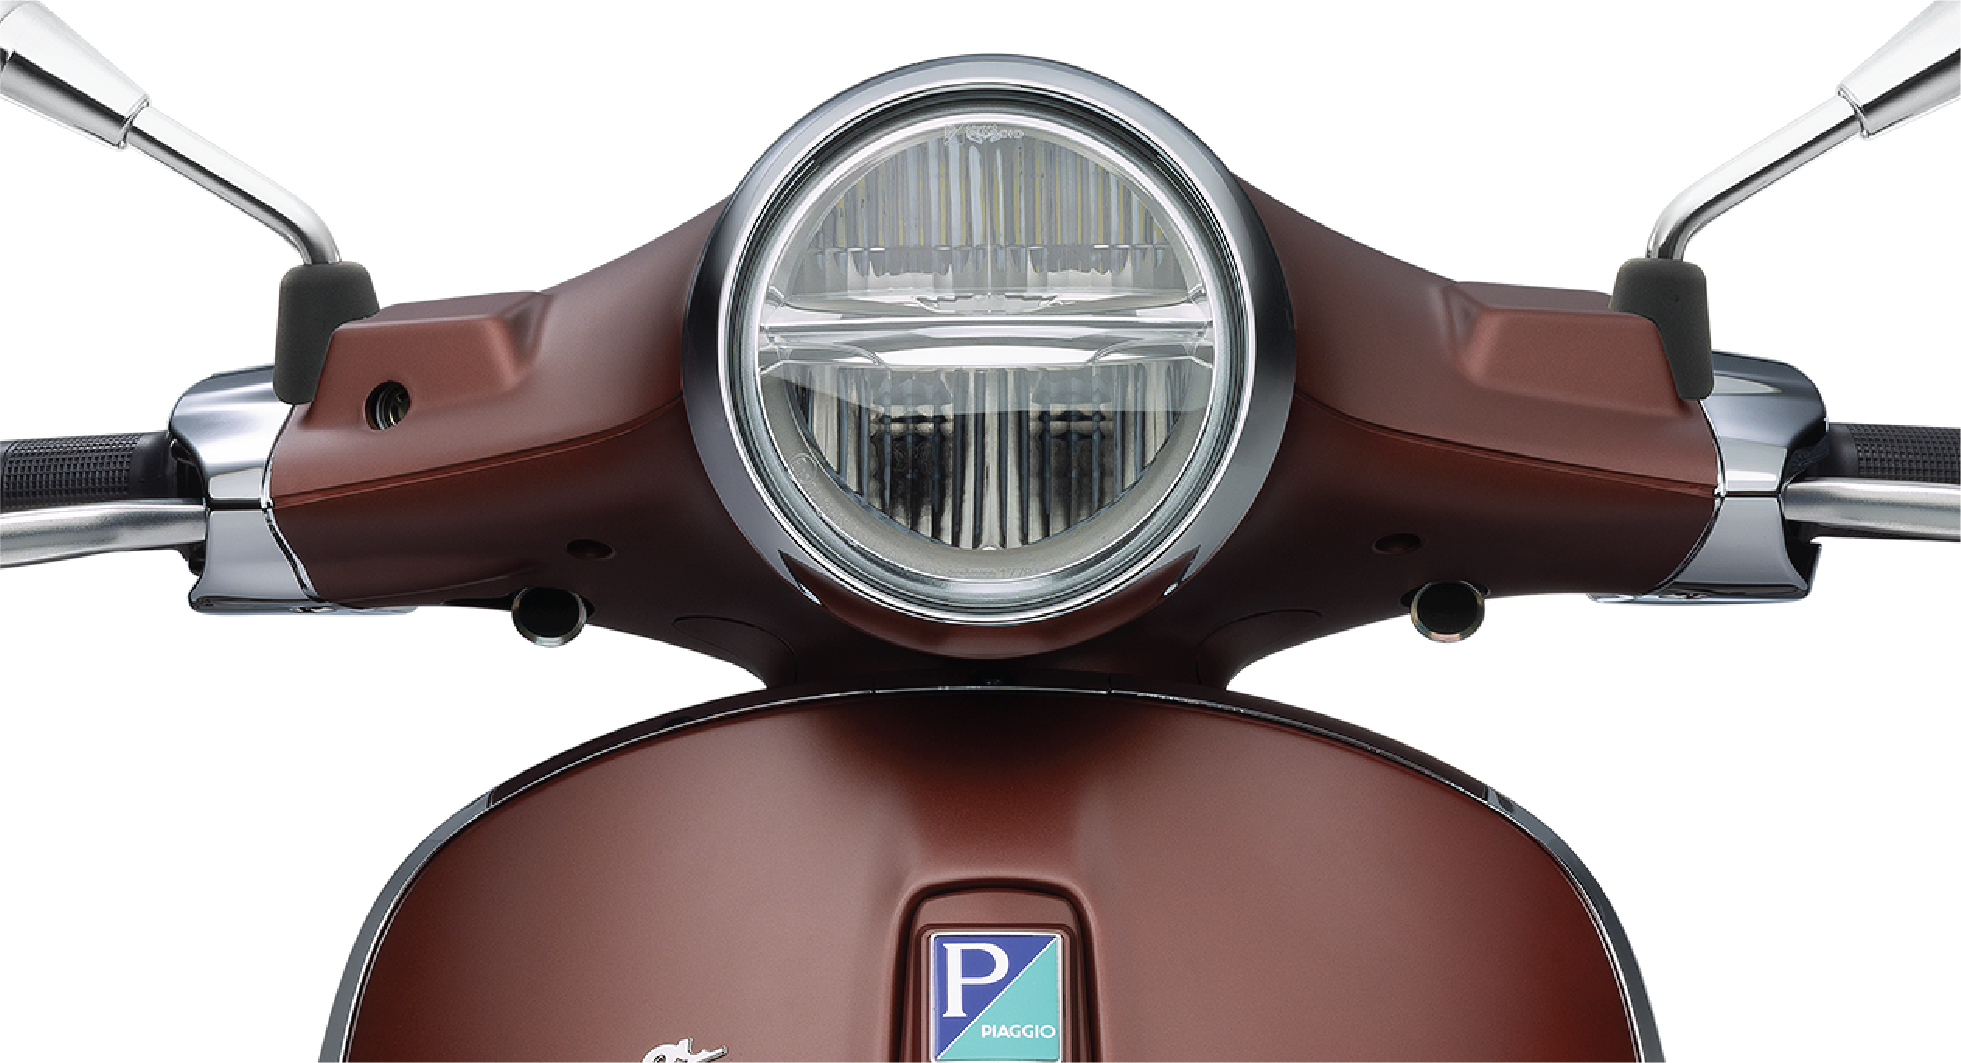 detail-vespa-50th-anniversary-brown-led-lamp.jpg